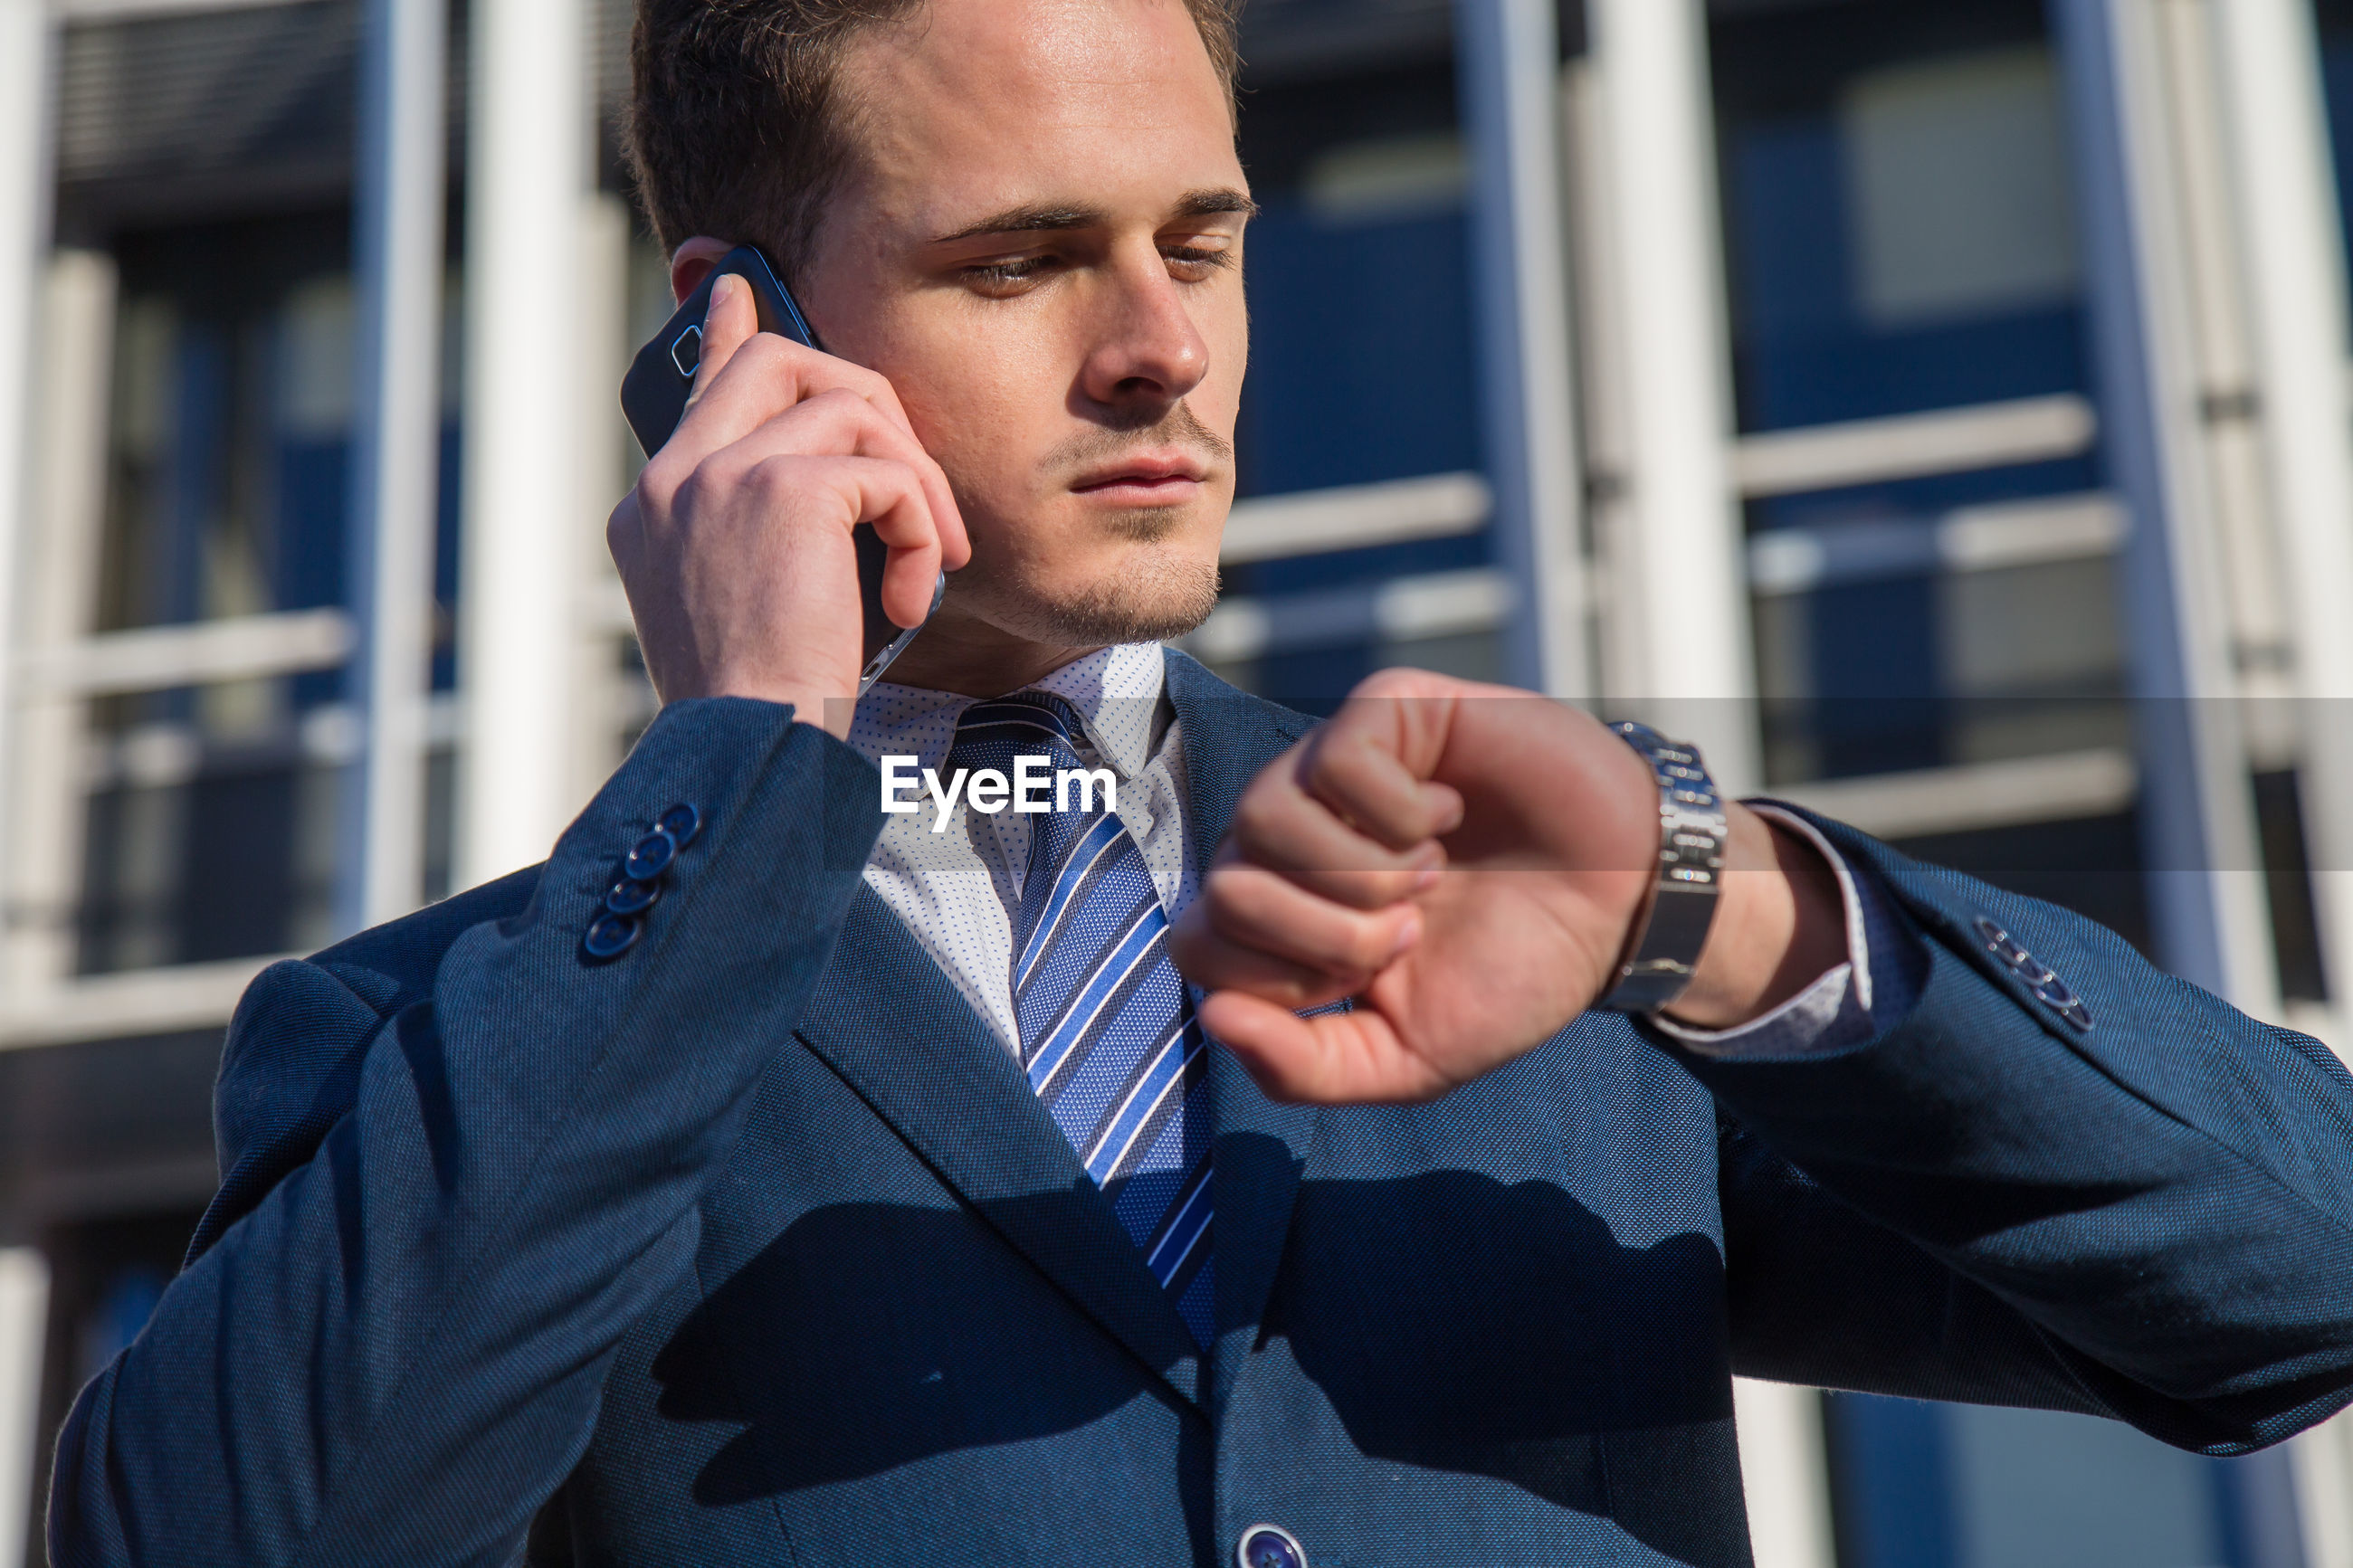 Low angle view of businessman talking on phone while checking time in city